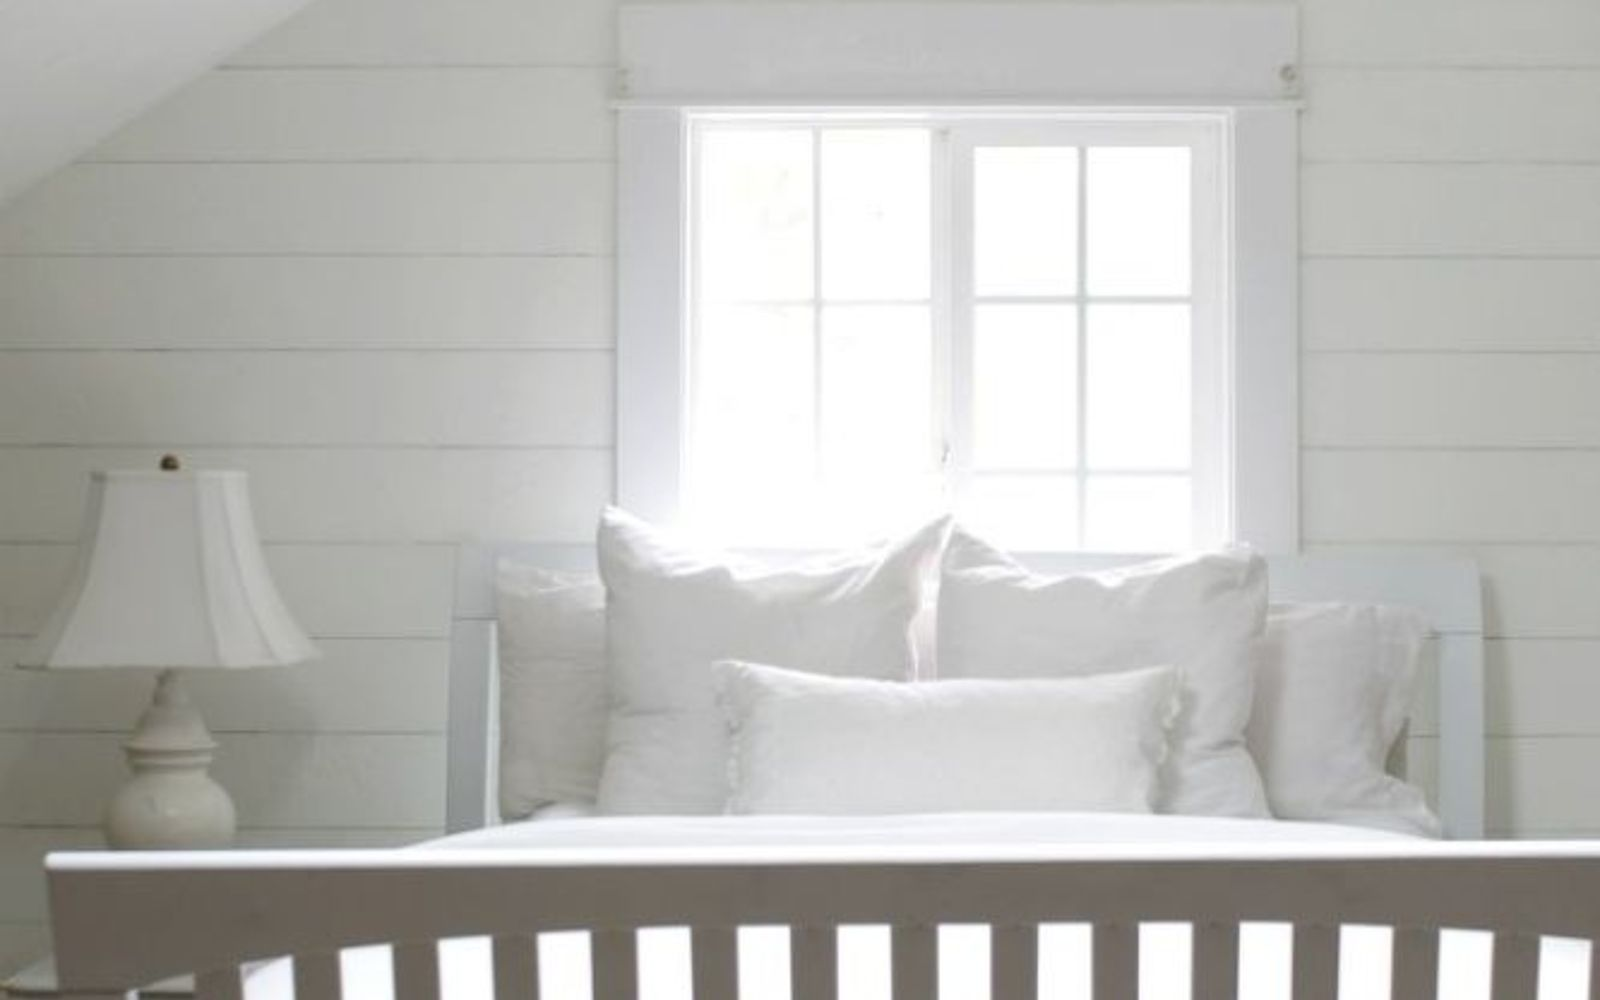 s 12 shiplap ideas that are hot right now, home decor, wall decor, Or redo an entire room with penciled planks